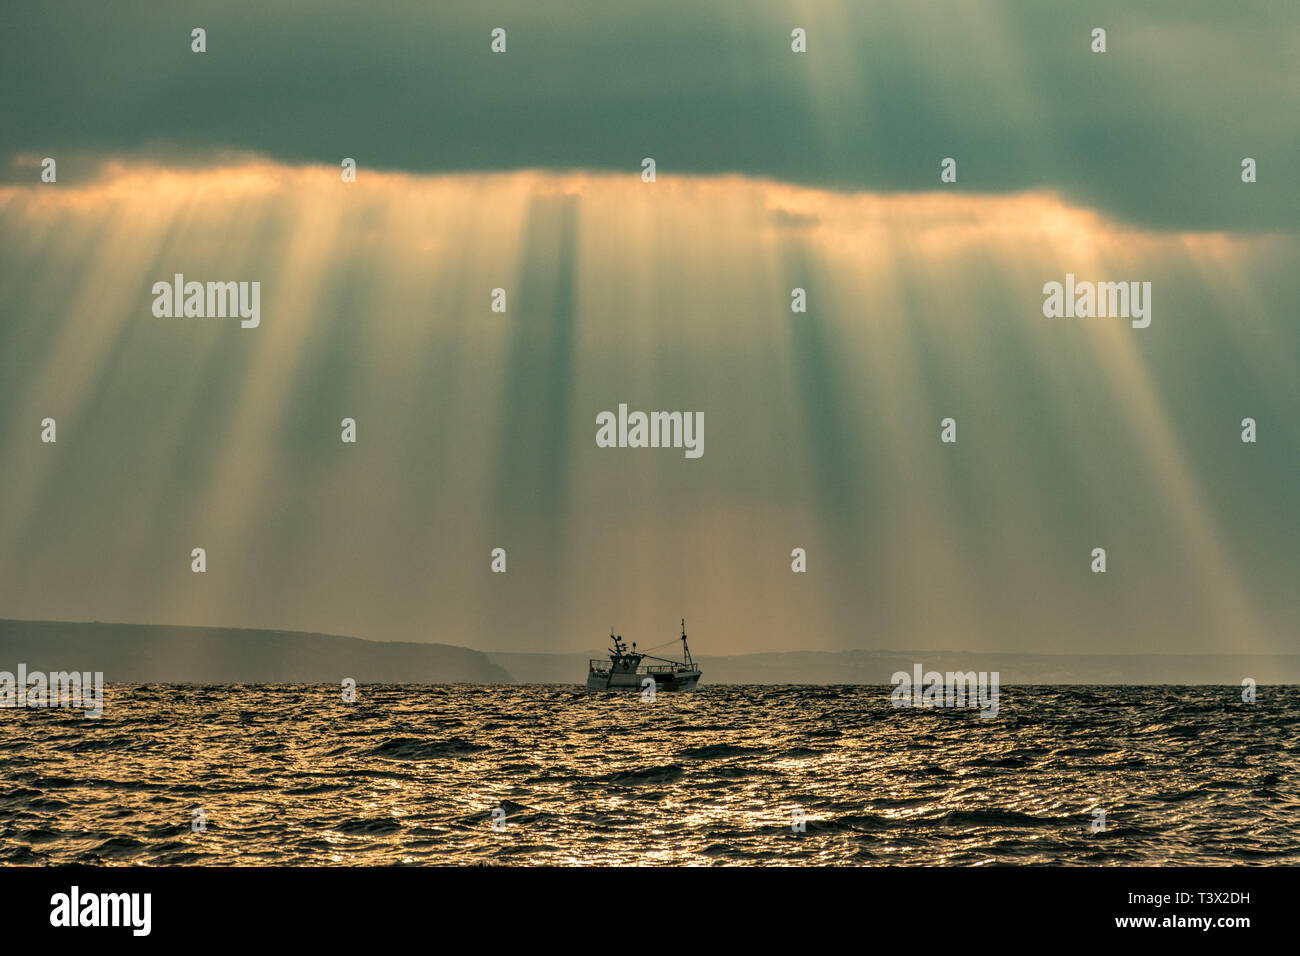 Mousehole, Cornwall, UK. 12th Apr, 2019. UK Weather. The sun made brief appearance though the clouds this morning, bringing some spectular crespicular rays over the sea at Mounts Bay Credit: Simon Maycock/Alamy Live News Stock Photo